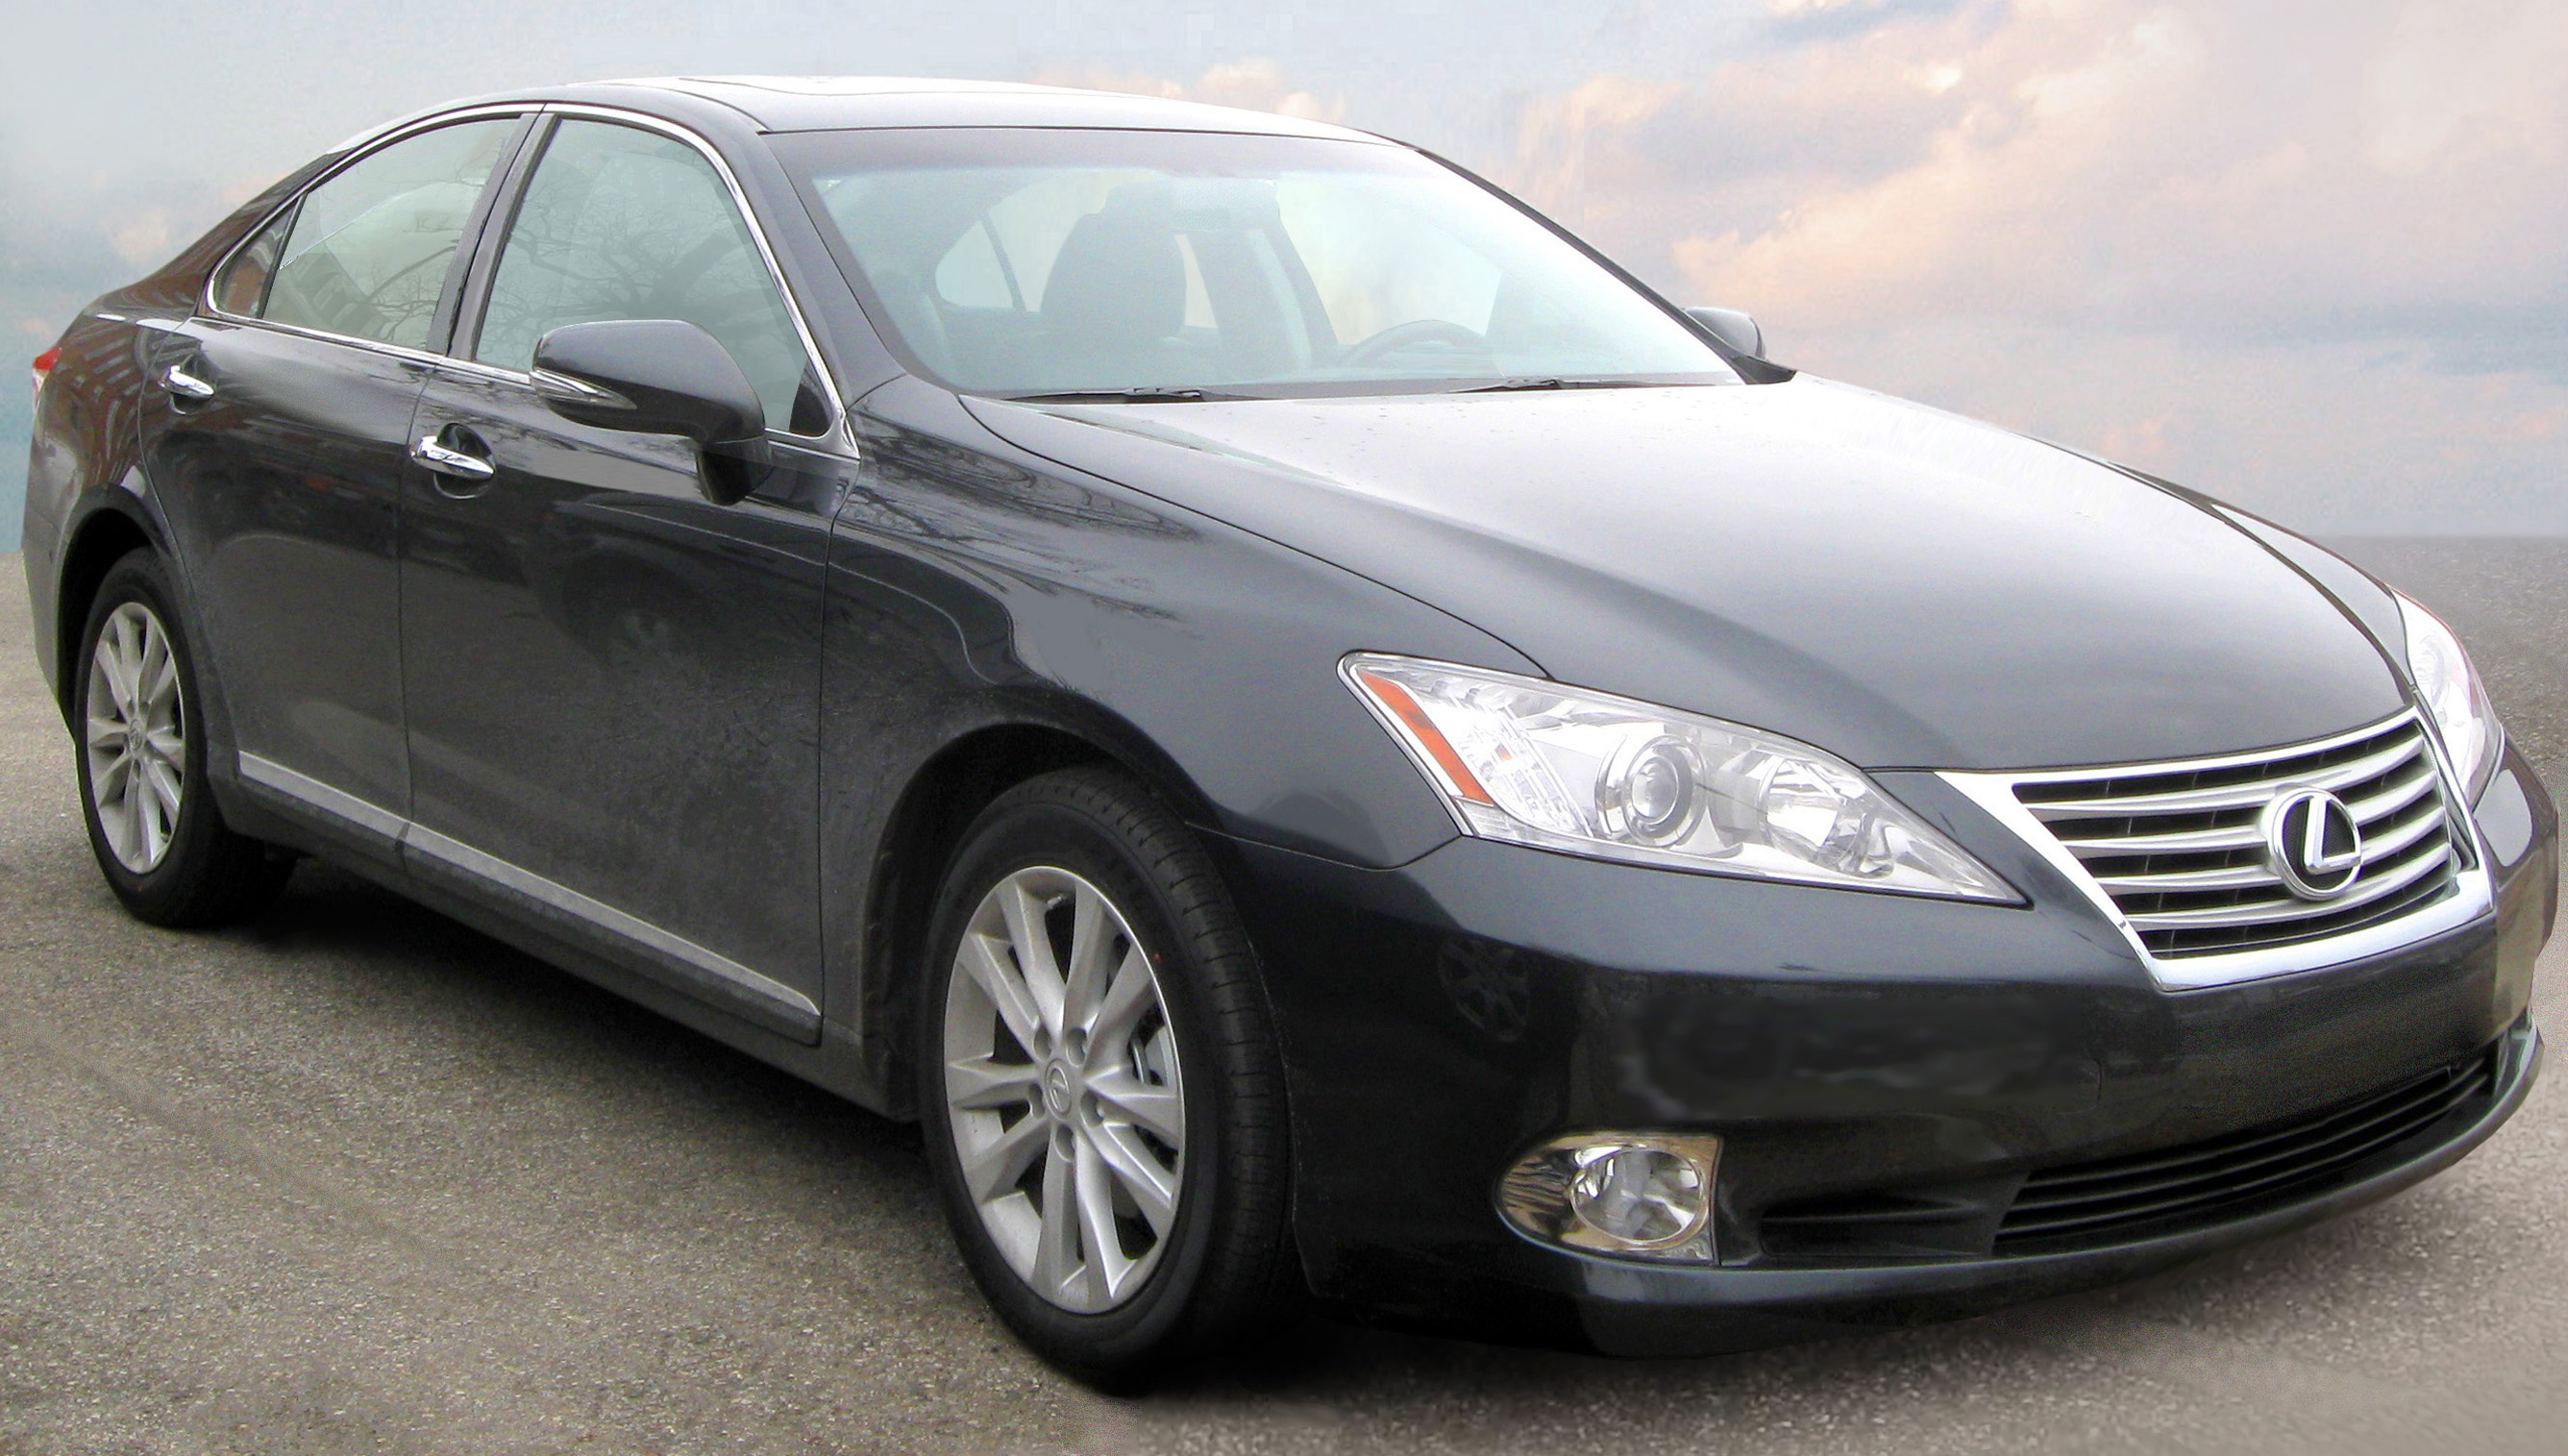 Make/Model Spotlight: Lexus ES 350